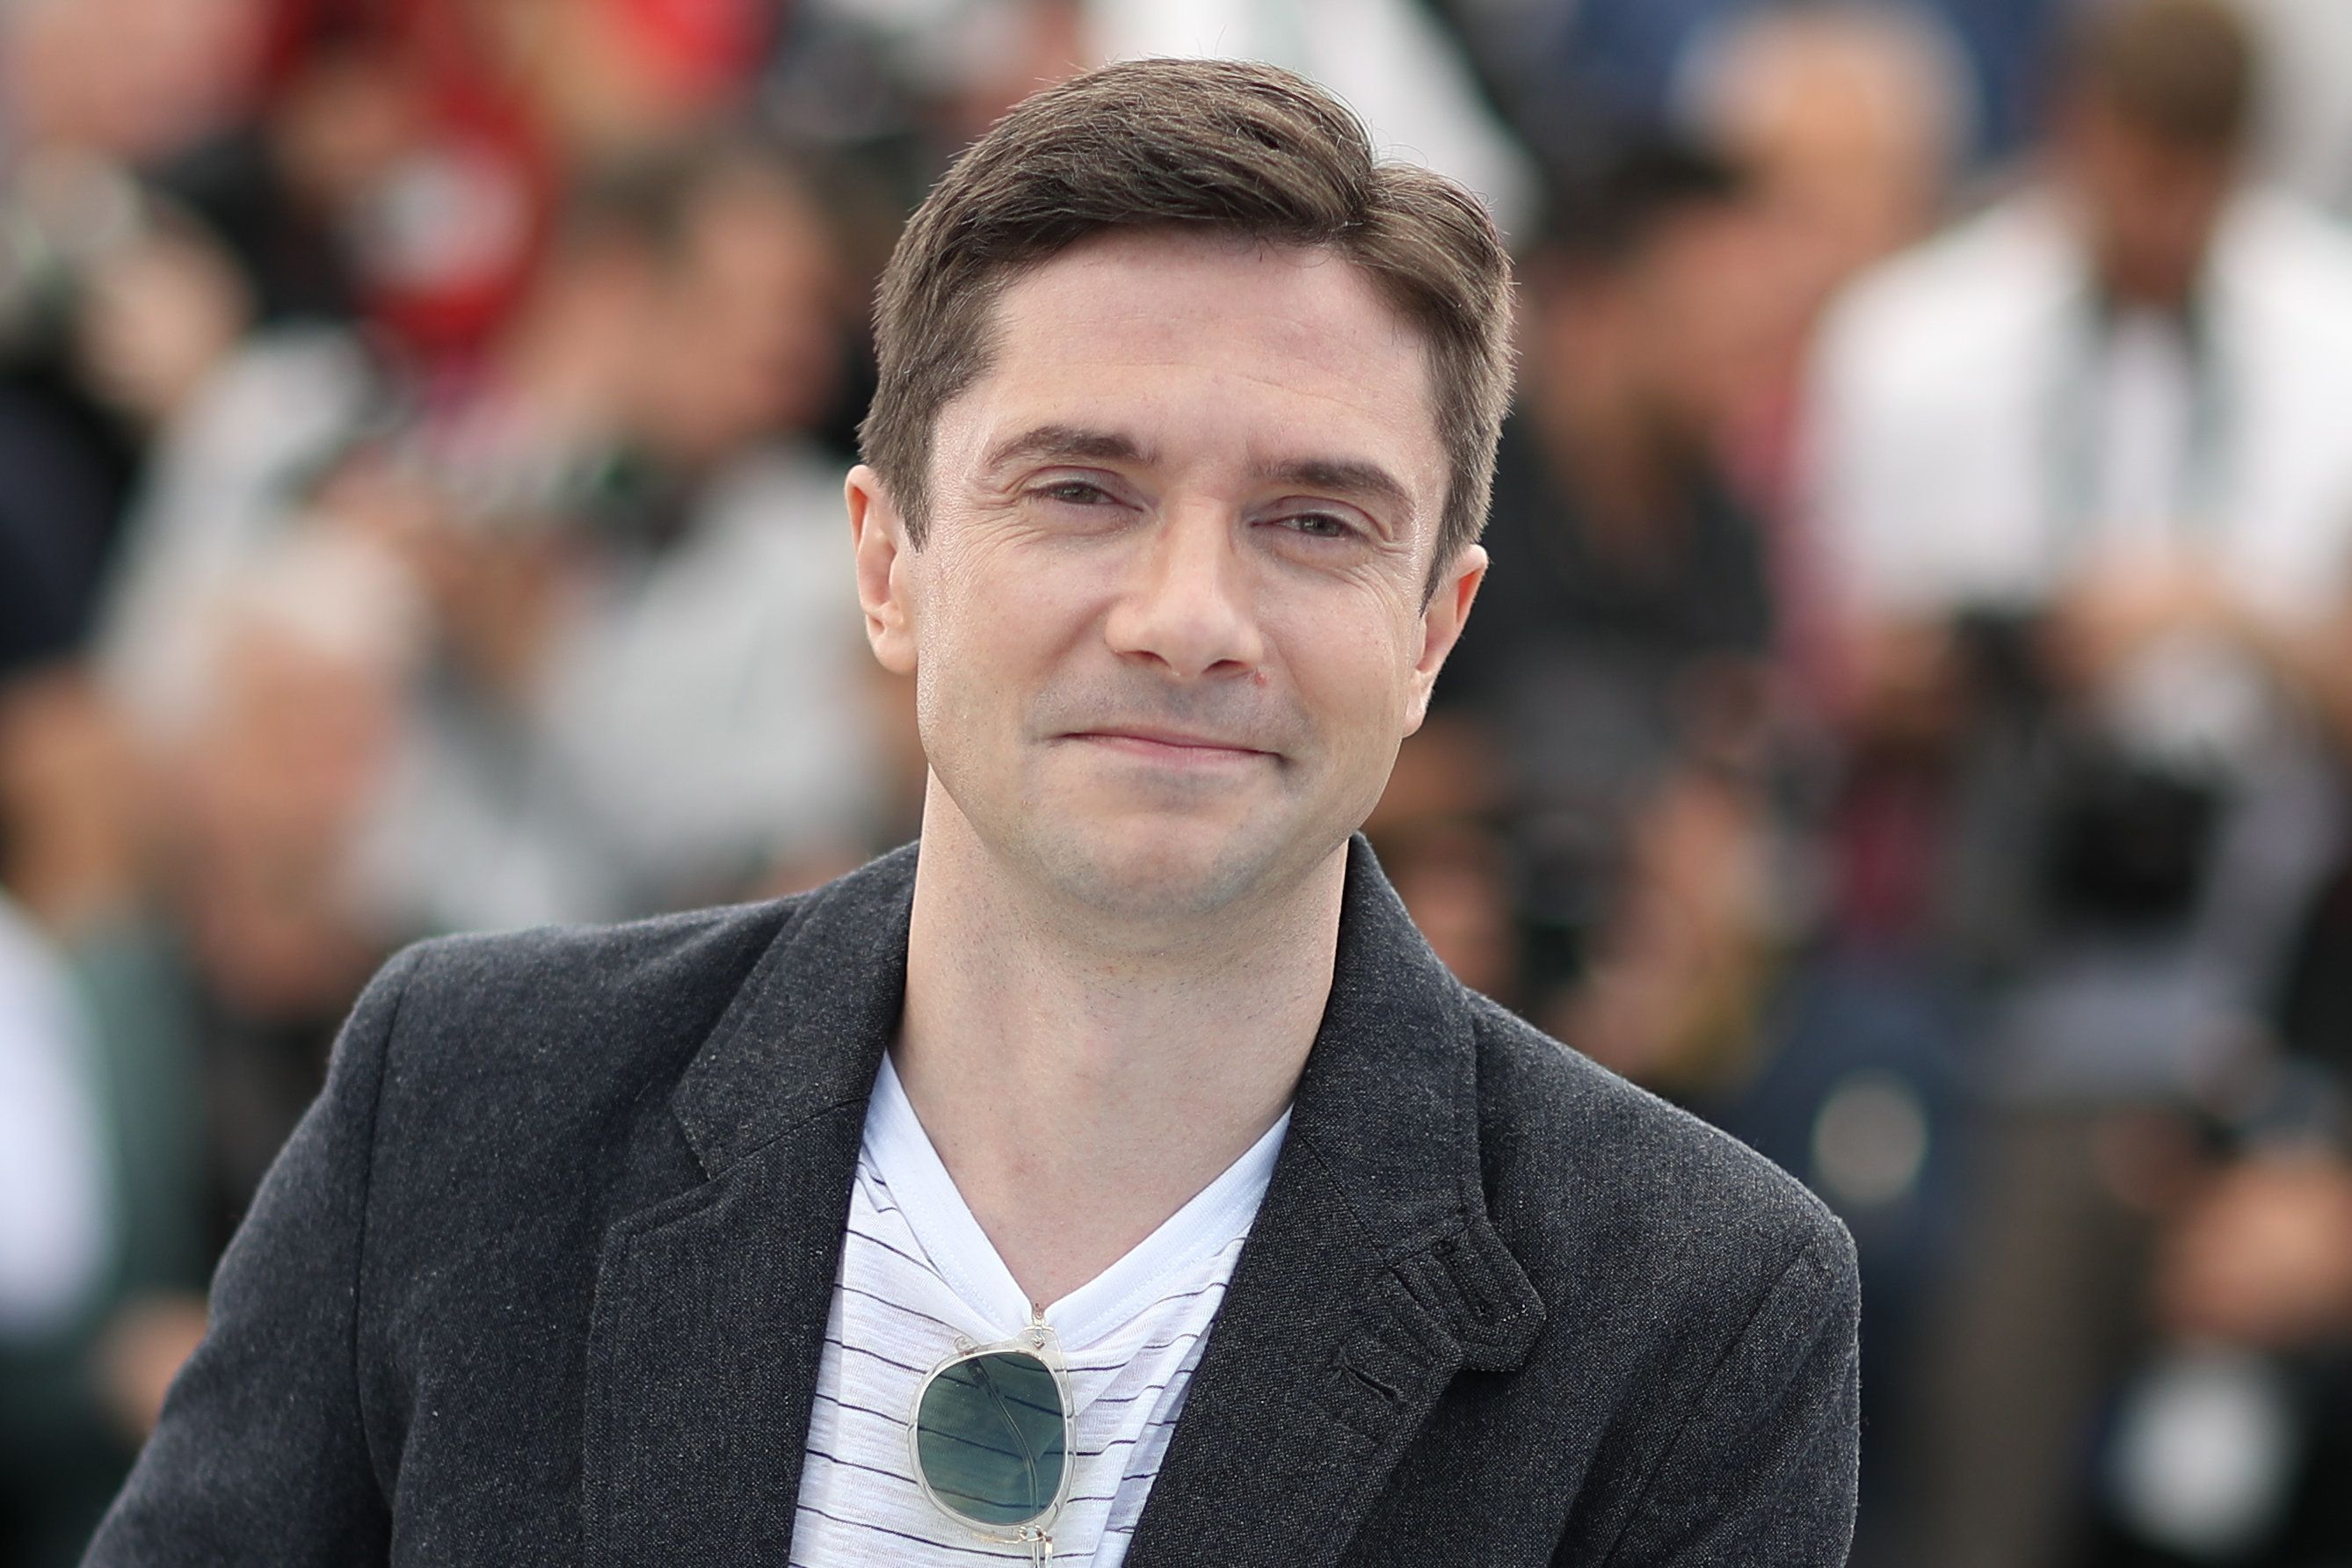 US actor Topher Grace poses on May 15, 2018 during a photocall for the film 'BlacKkKlansman' at the 71st edition of the Cannes Film Festival in Cannes, southern France. (Photo by Valery HACHE / AFP)        (Photo credit should read VALERY HACHE/AFP/Getty Images)